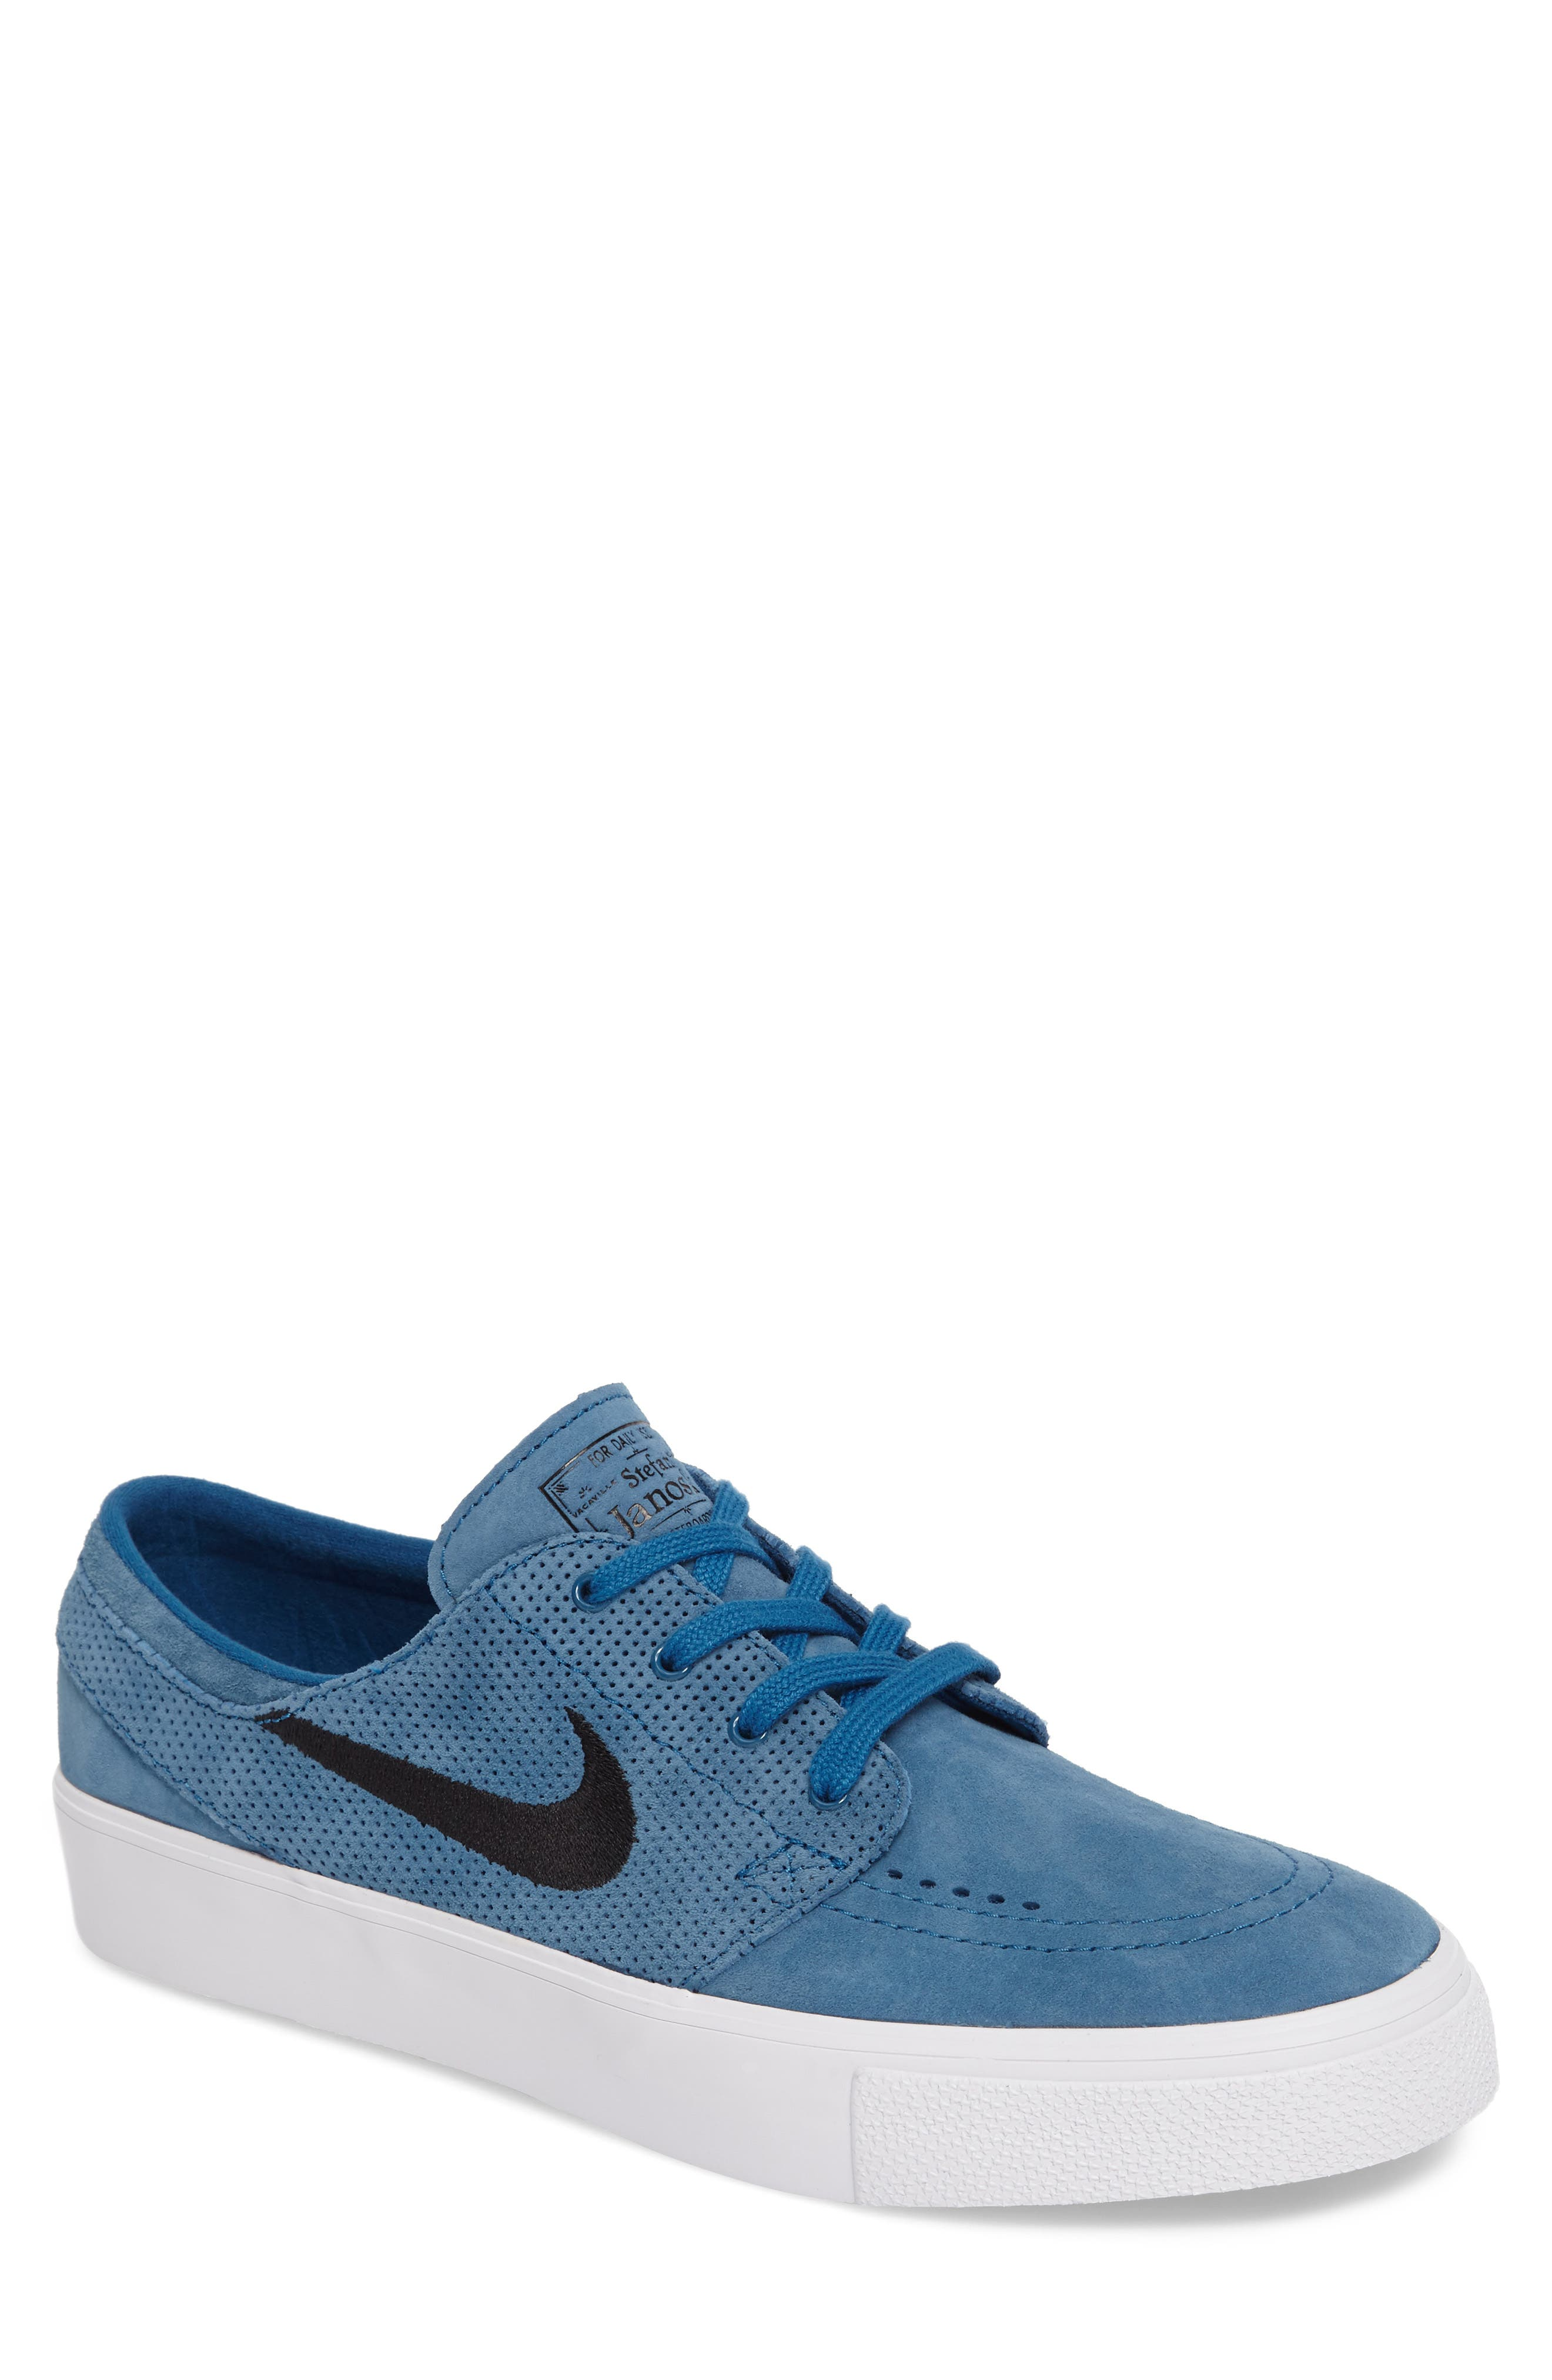 Zoom Stefan Janoski Premium Skate Sneaker,                         Main,                         color, Industrial Blue/ Black